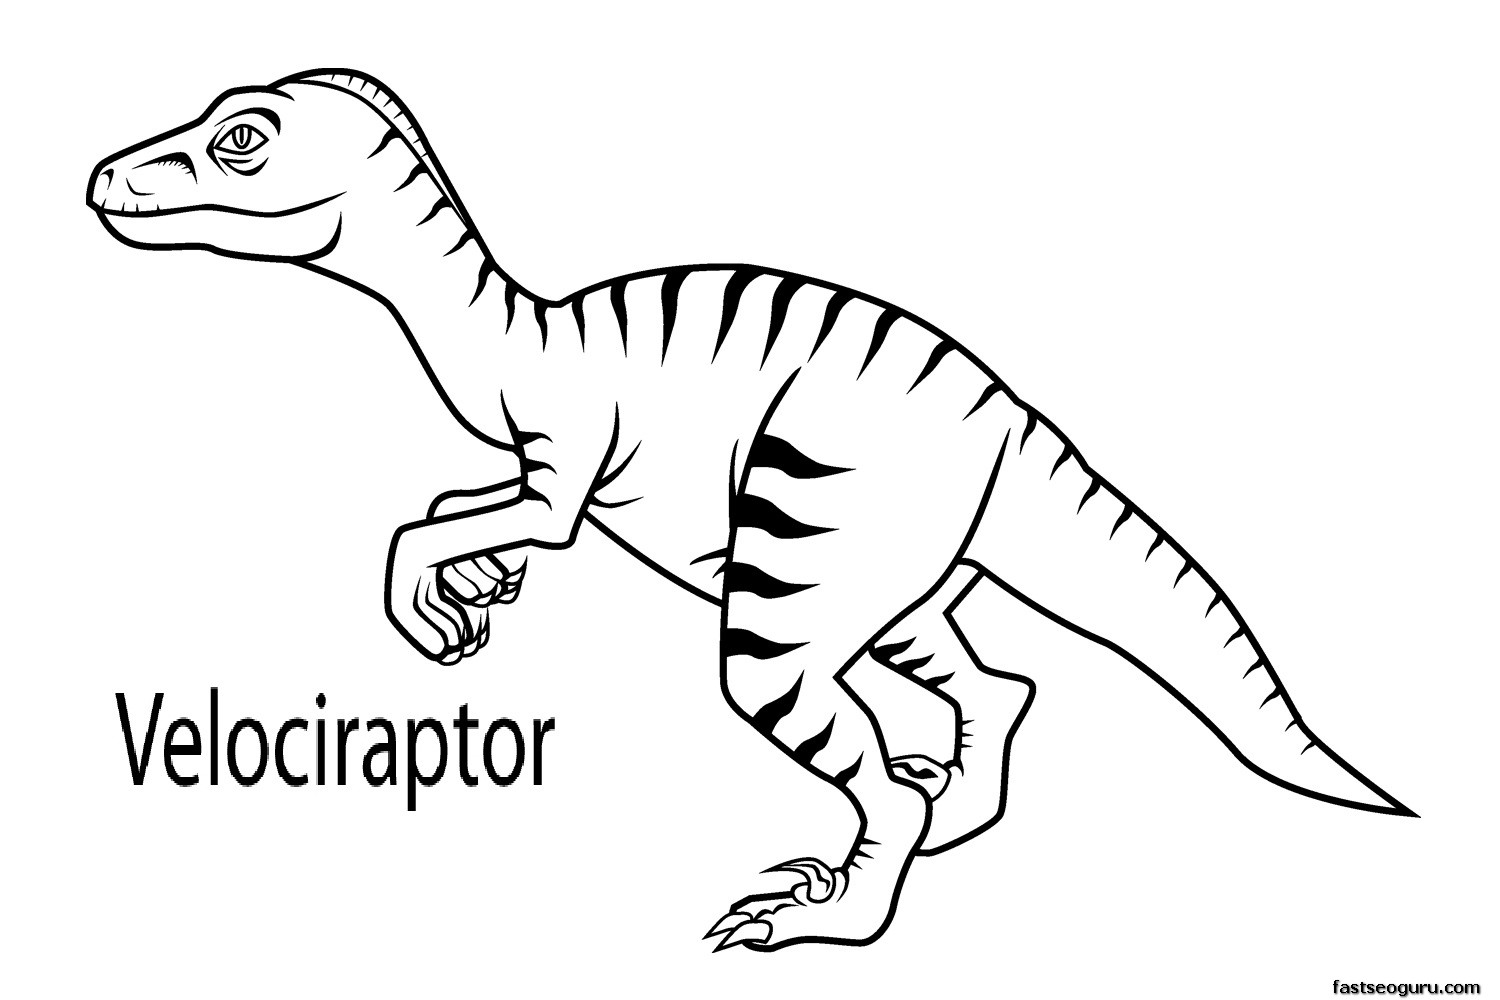 dinosaurs velociraptor coloring pages-#1